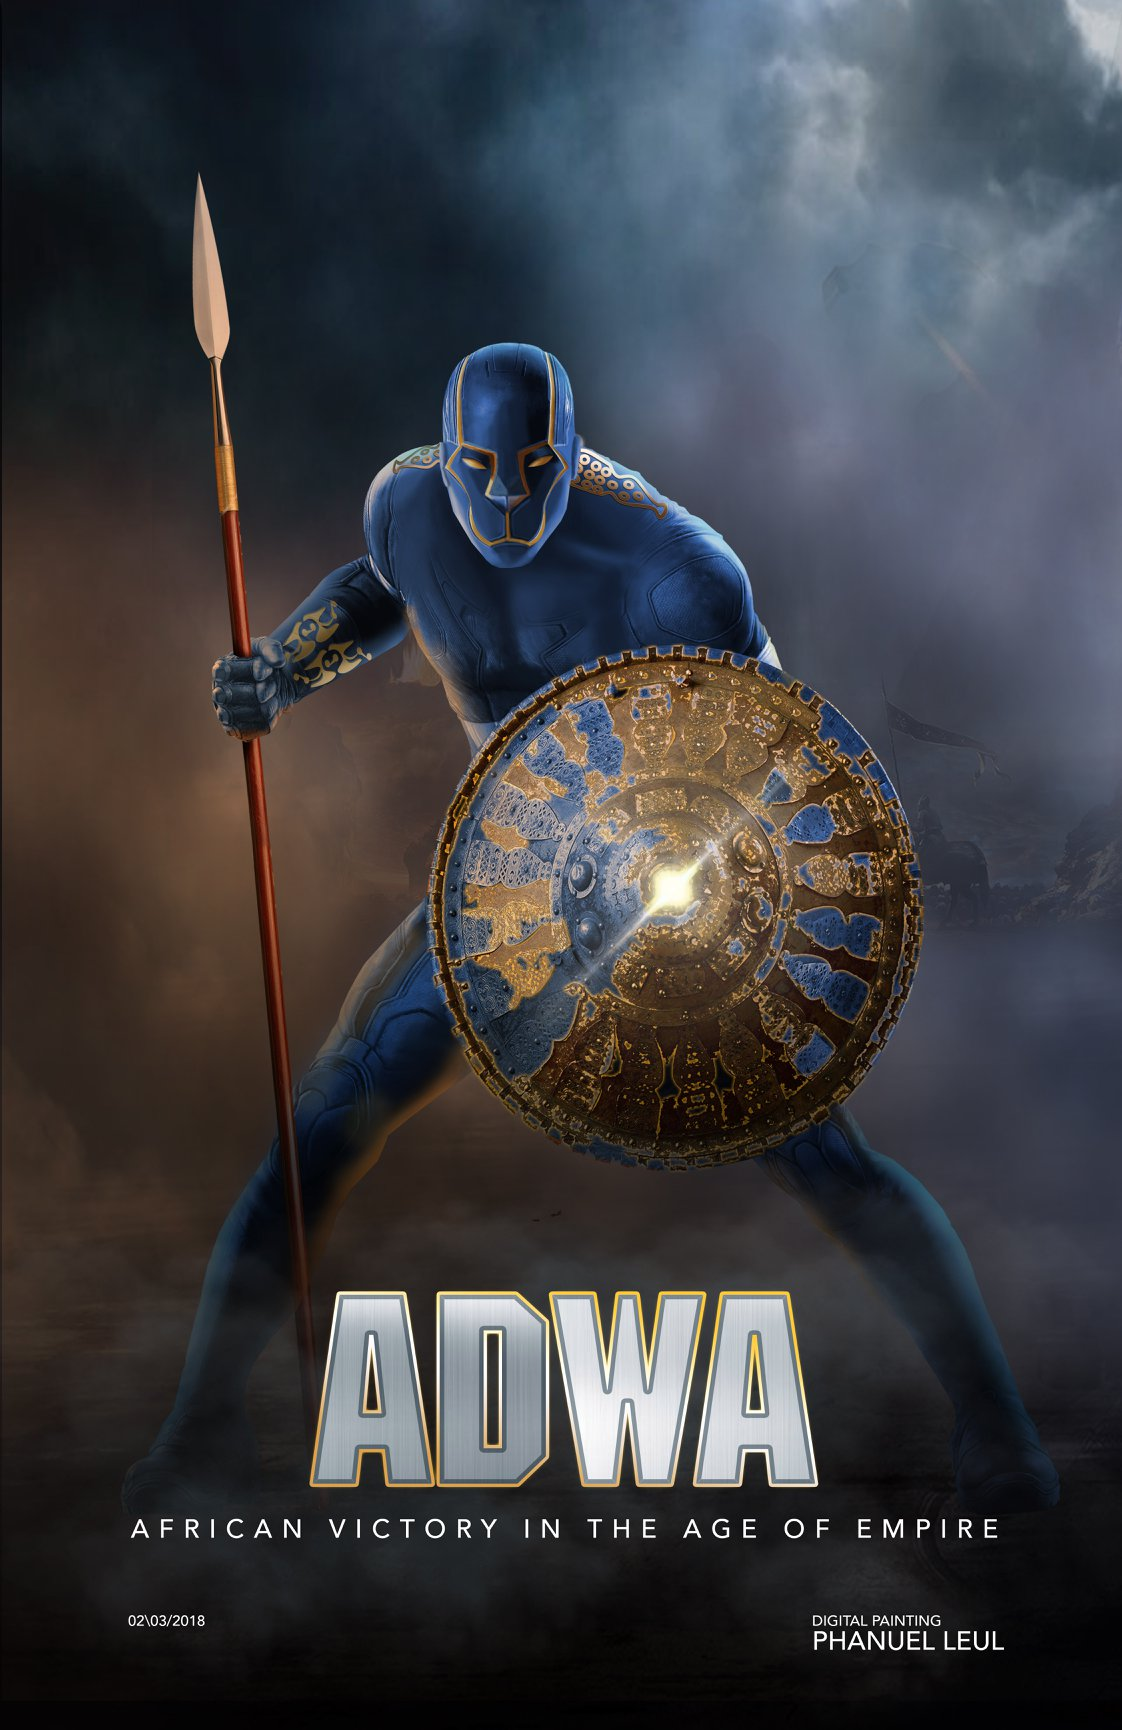 Adwa character design by Fanuel Leul